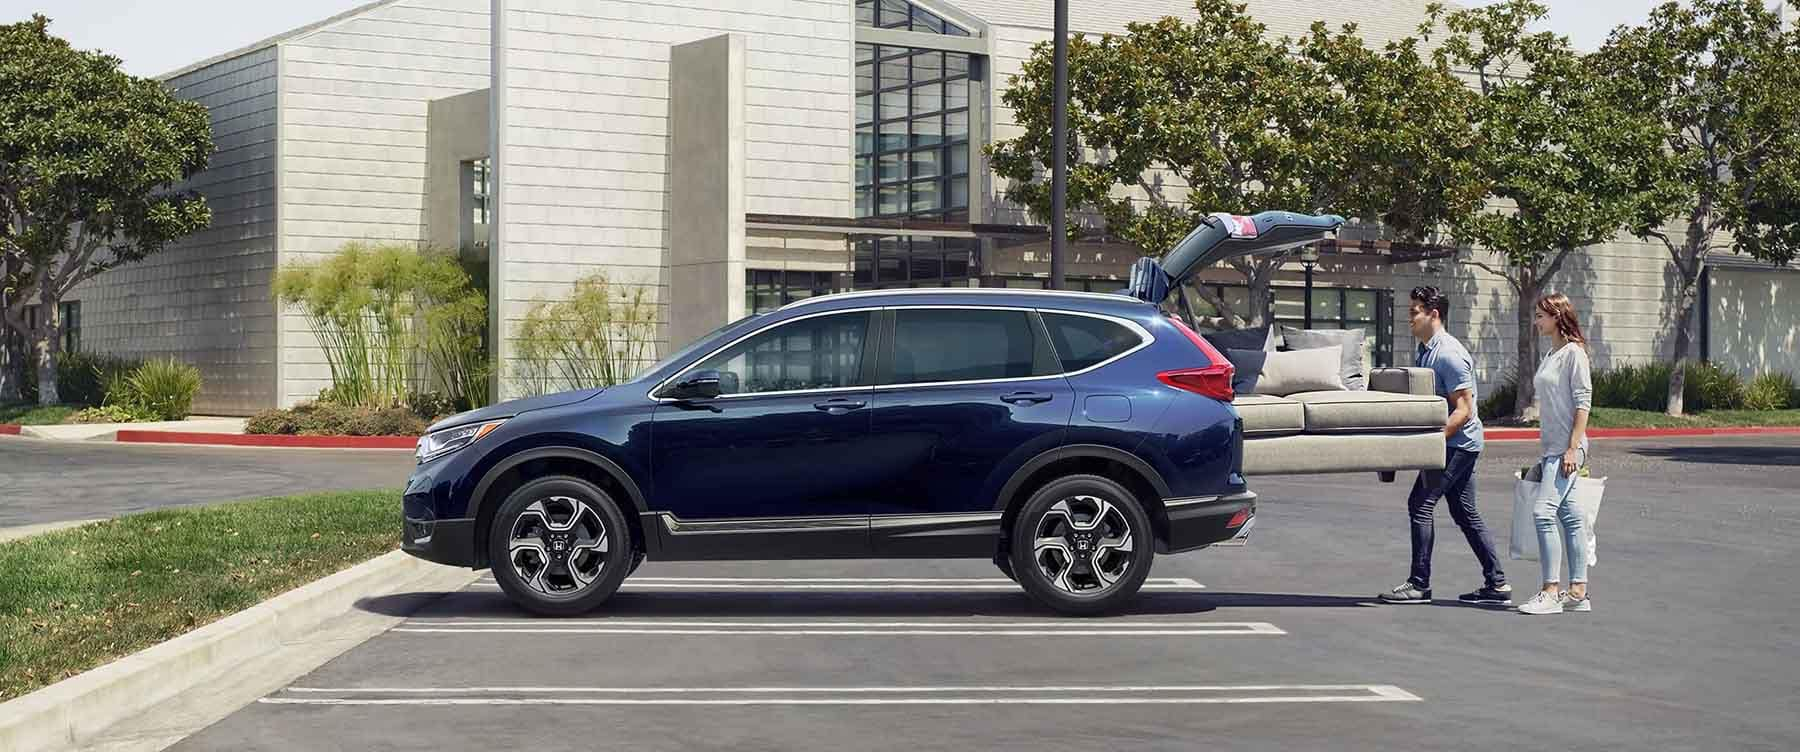 2019 Honda CR-V Cargo Area holding a couch